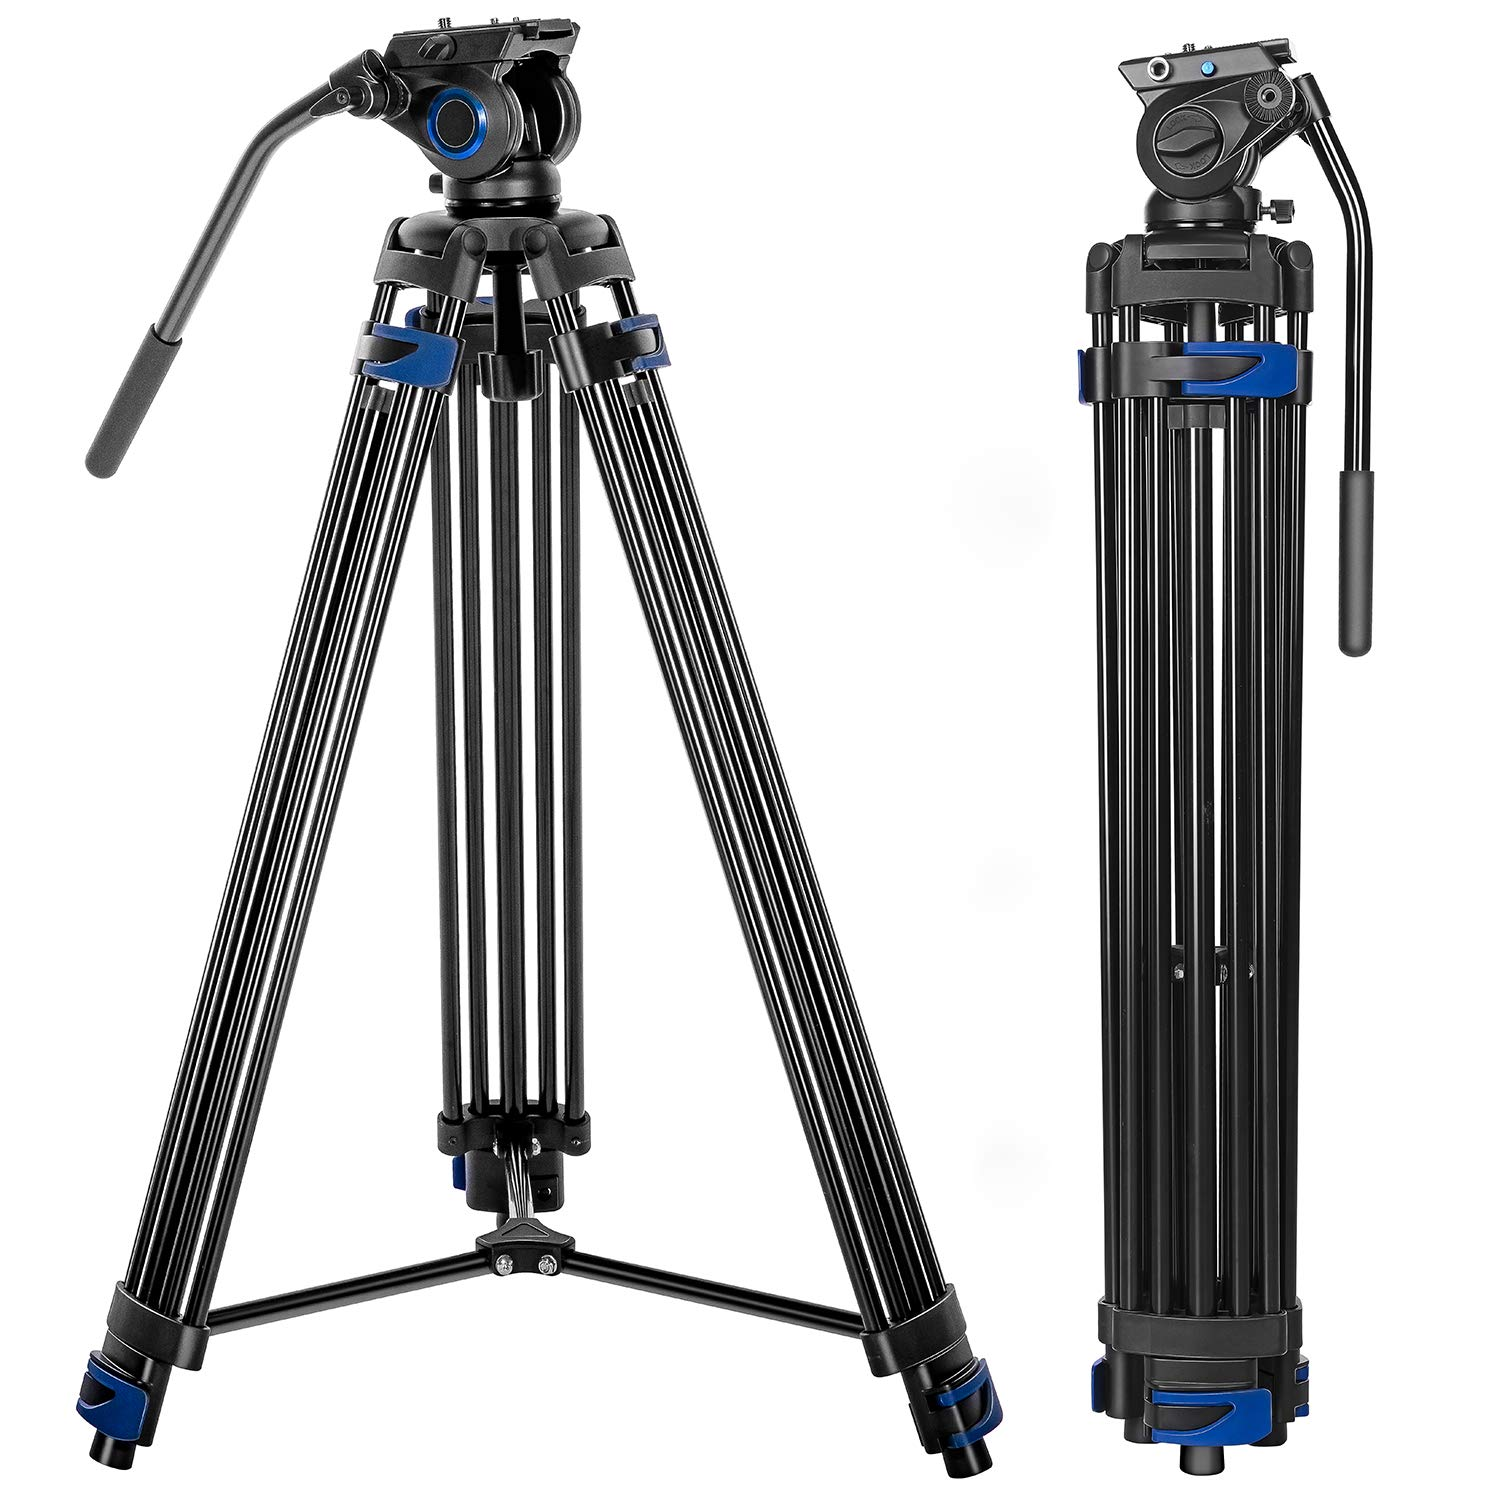 Professional Video Tripod System, 72-inch Aluminum Heavy Duty Twin Tube Camera Tripod with Fluid Head for DSLR Camcorder, Max Loading 13.2 LB by DIGIANT